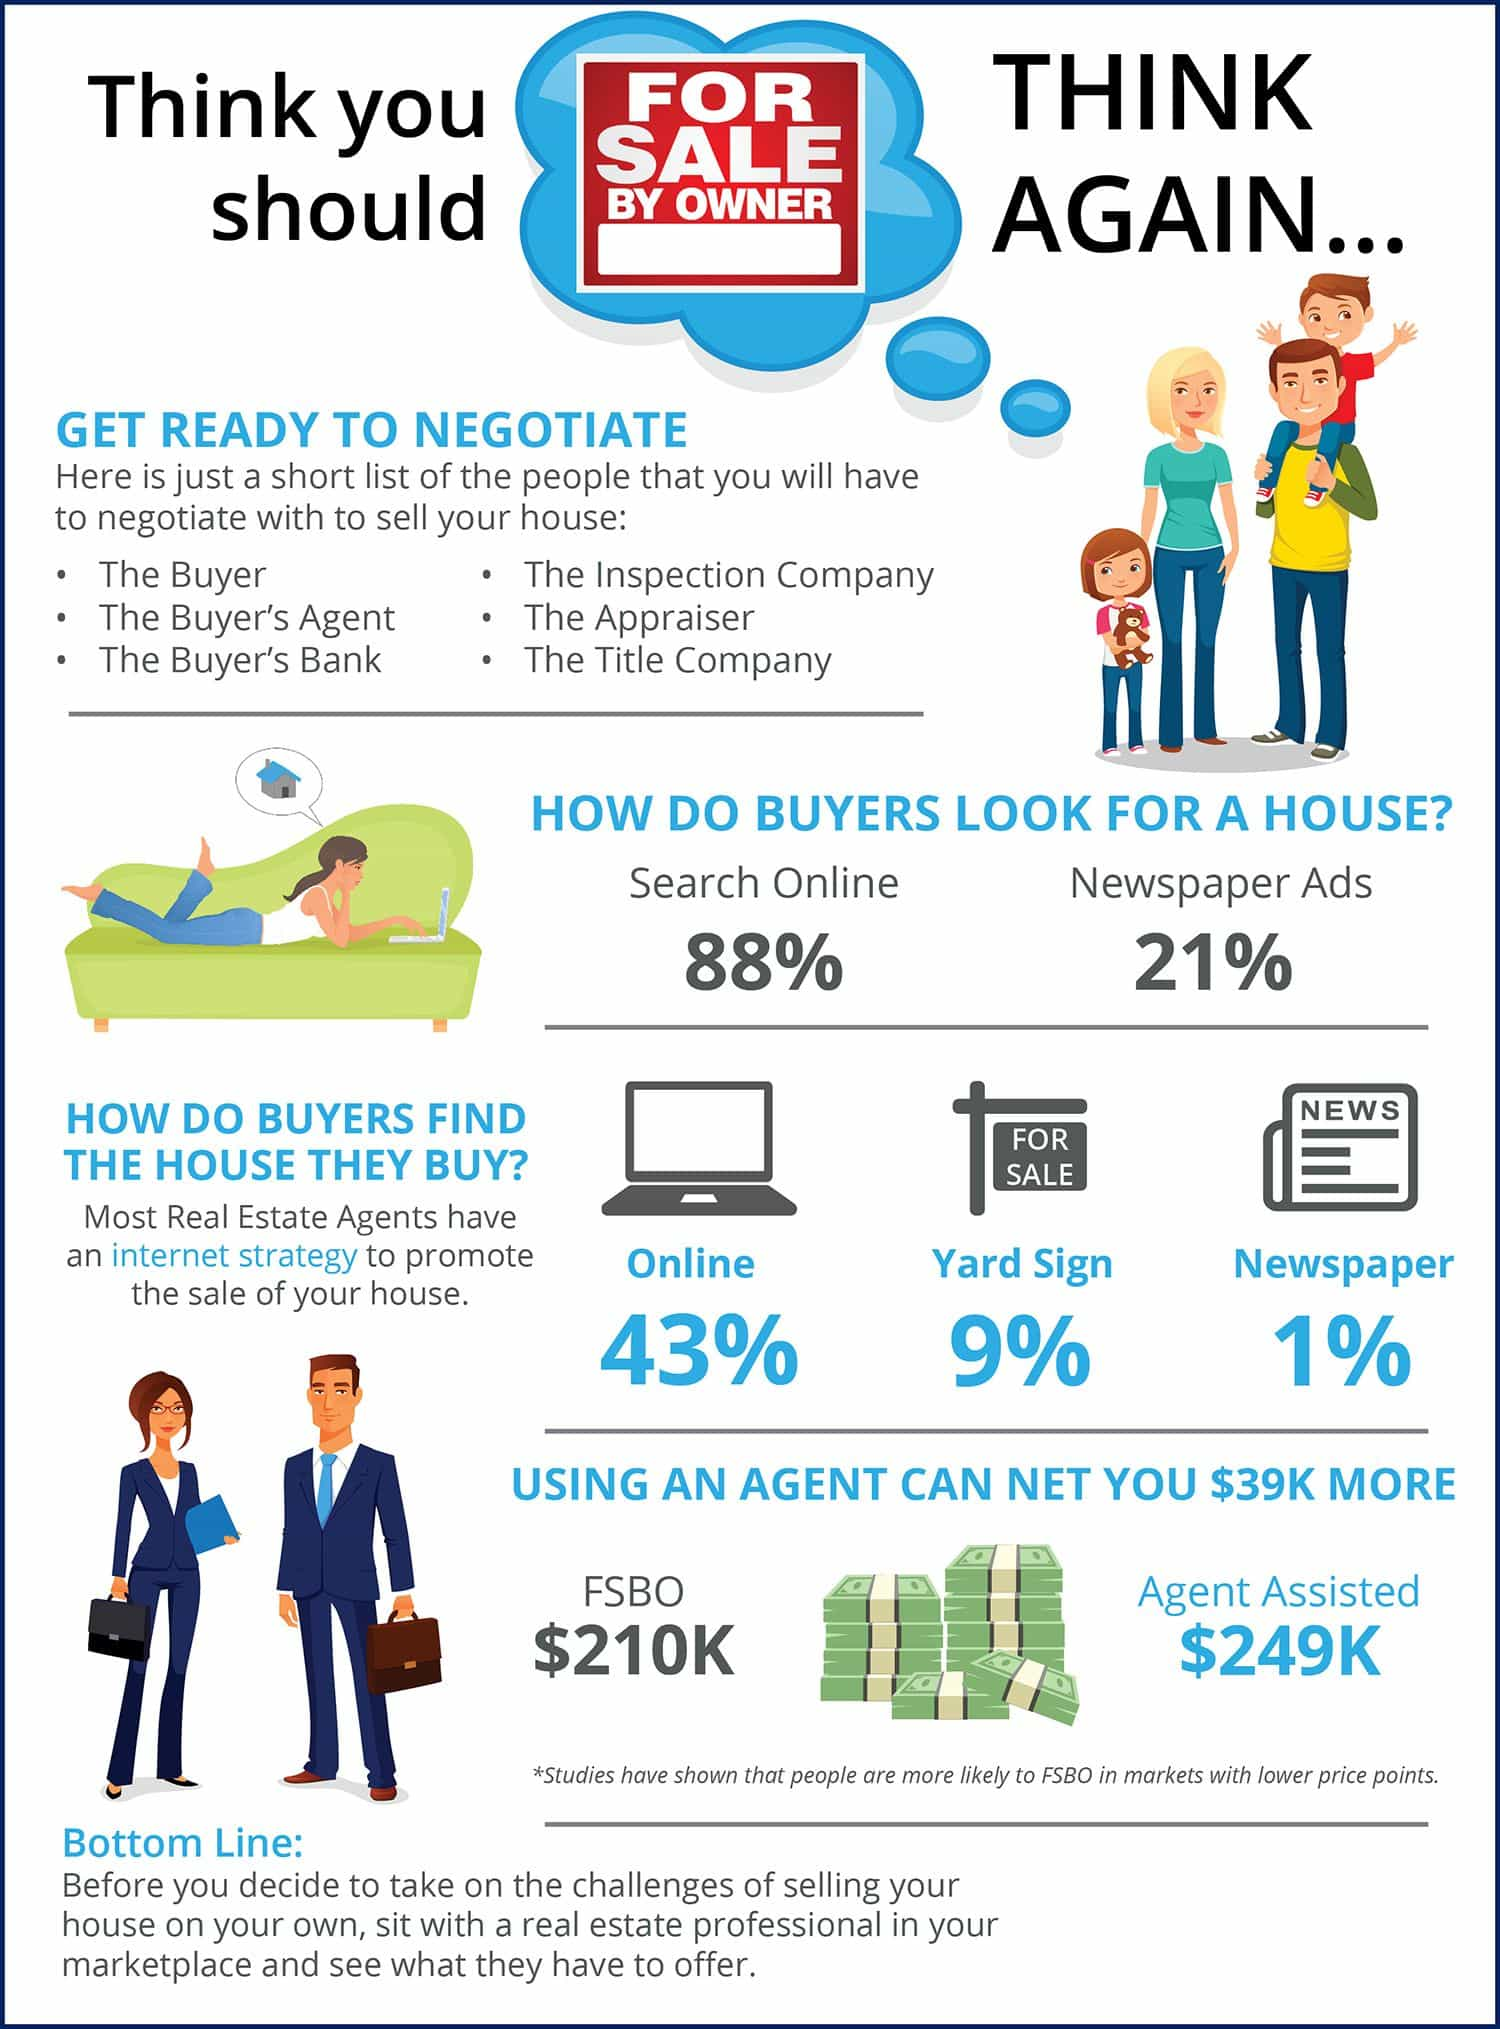 Thinking You Should FSBO? Think Again [INFOGRAPHIC]